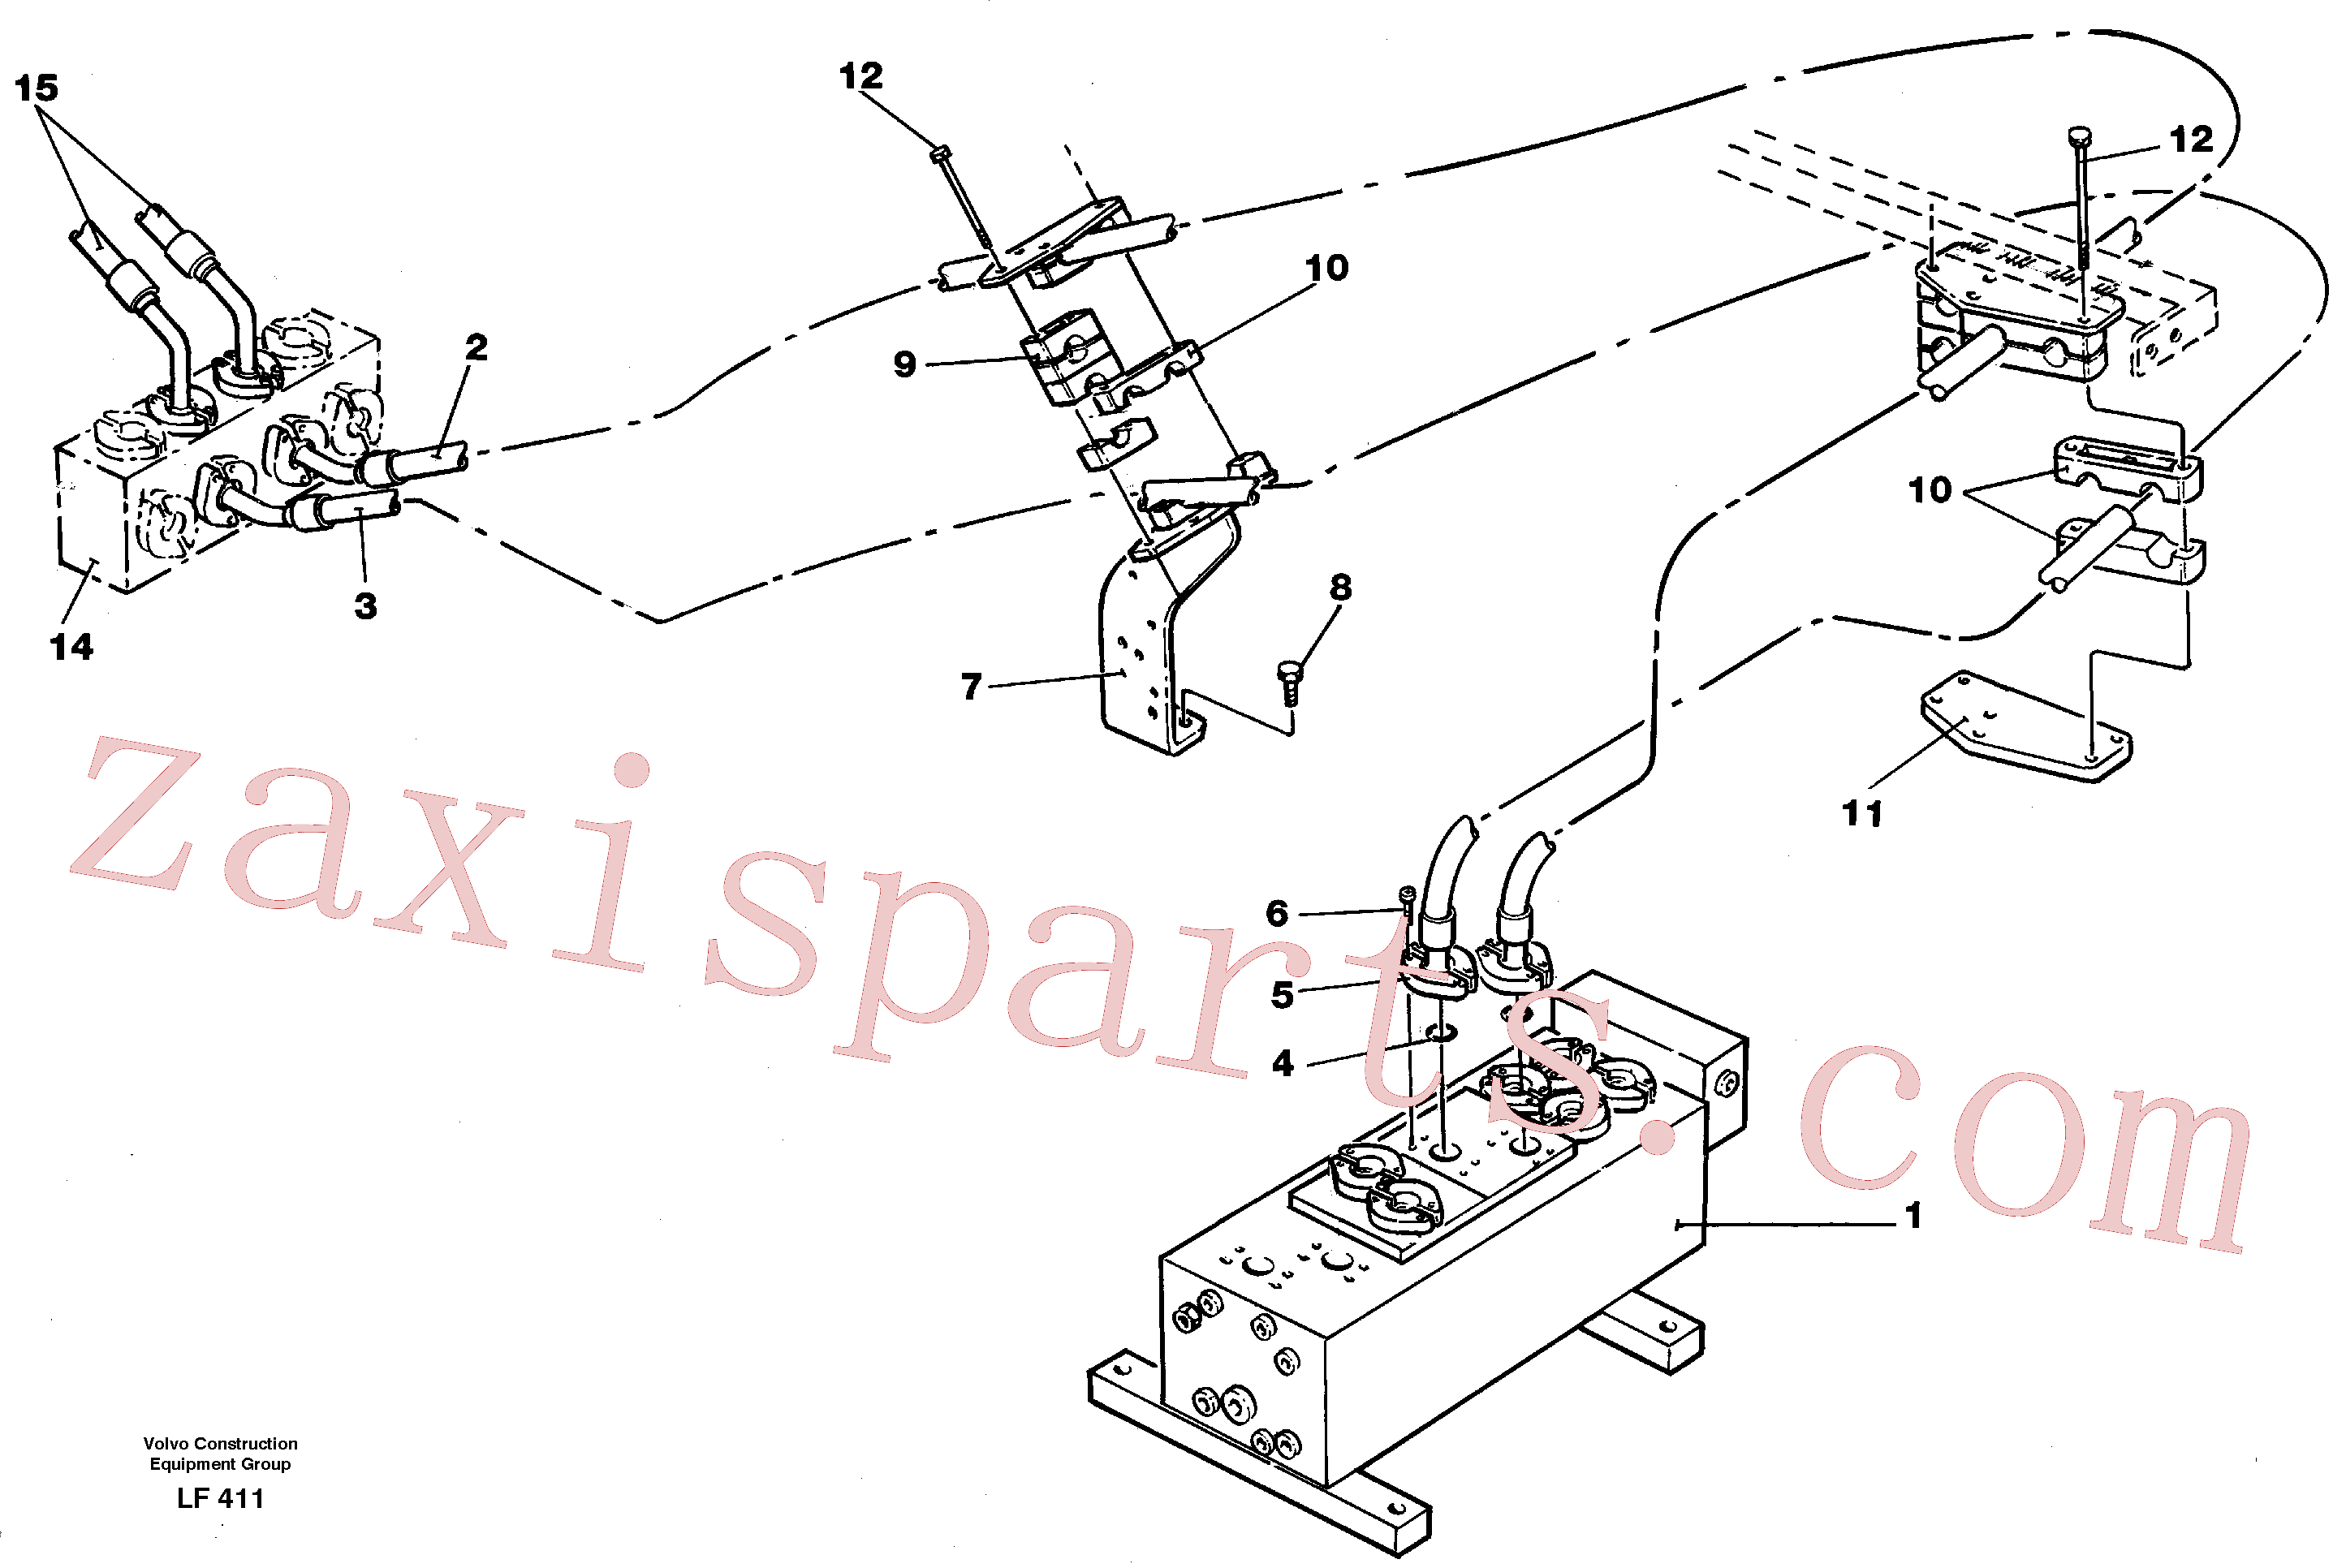 VOE14255385 for Volvo Hydraulic system Dipper arm(LF411 assembly)